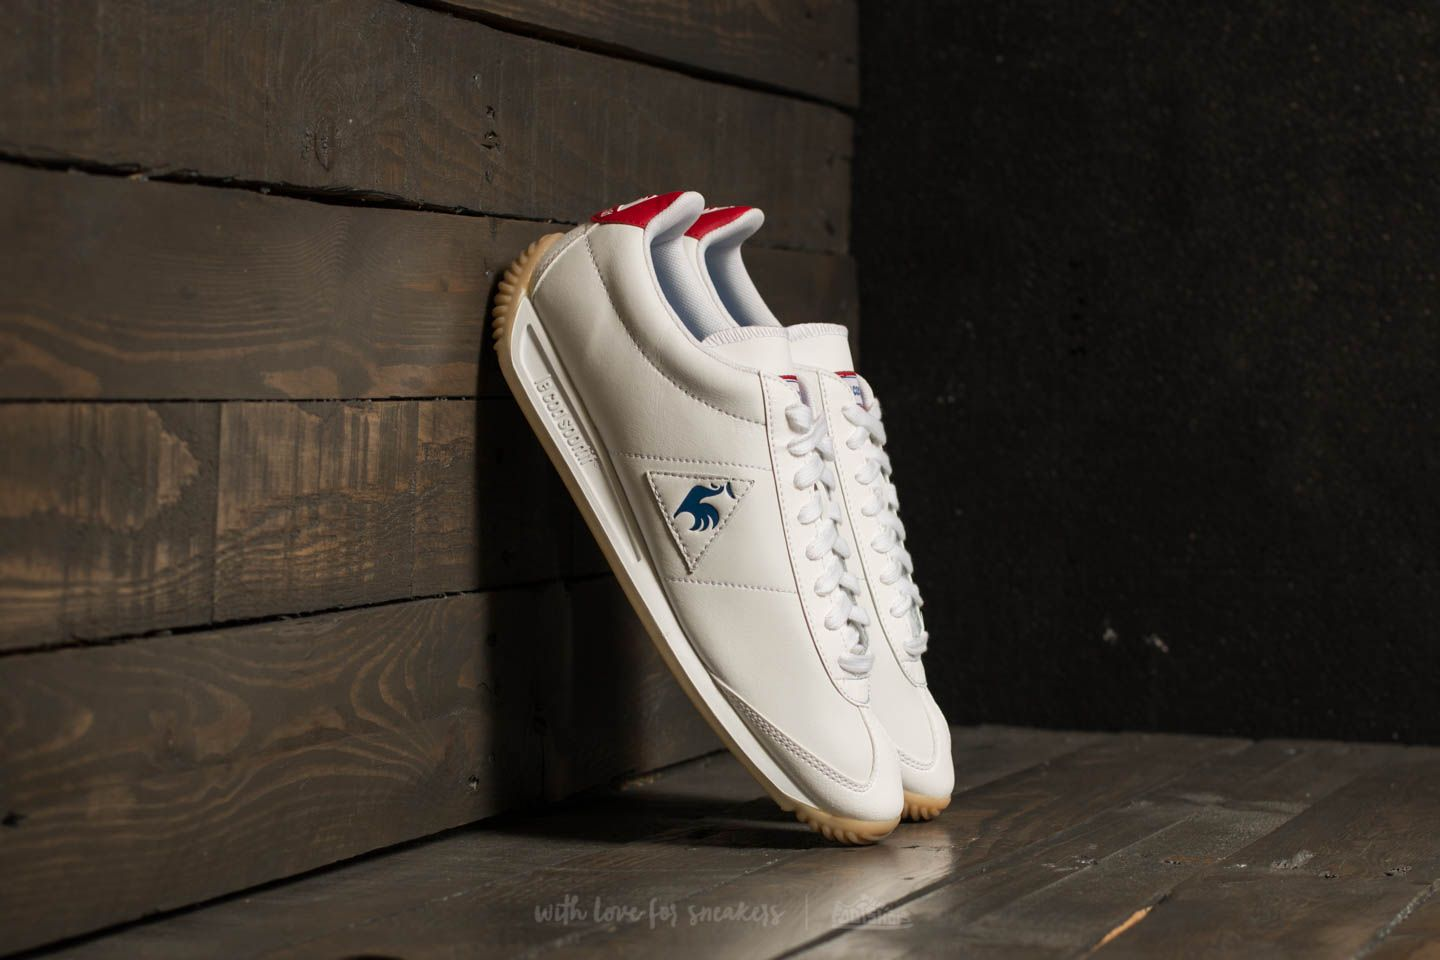 928be4e79 le coq sportif Quartz Lea Sport Gum Optical White/ Classic Blue ...